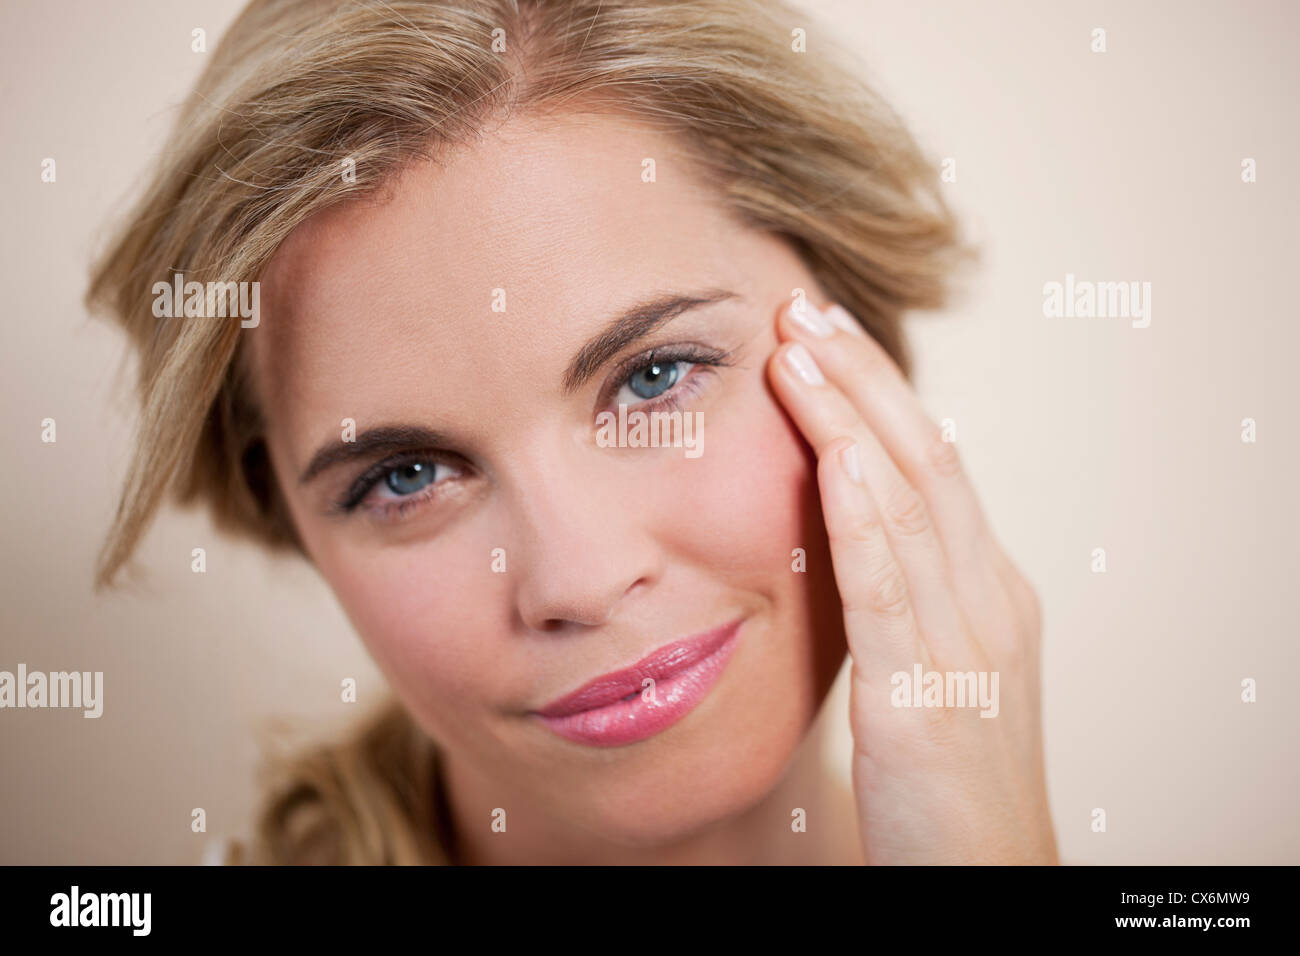 A young blonde woman touching her face, smiling - Stock Image